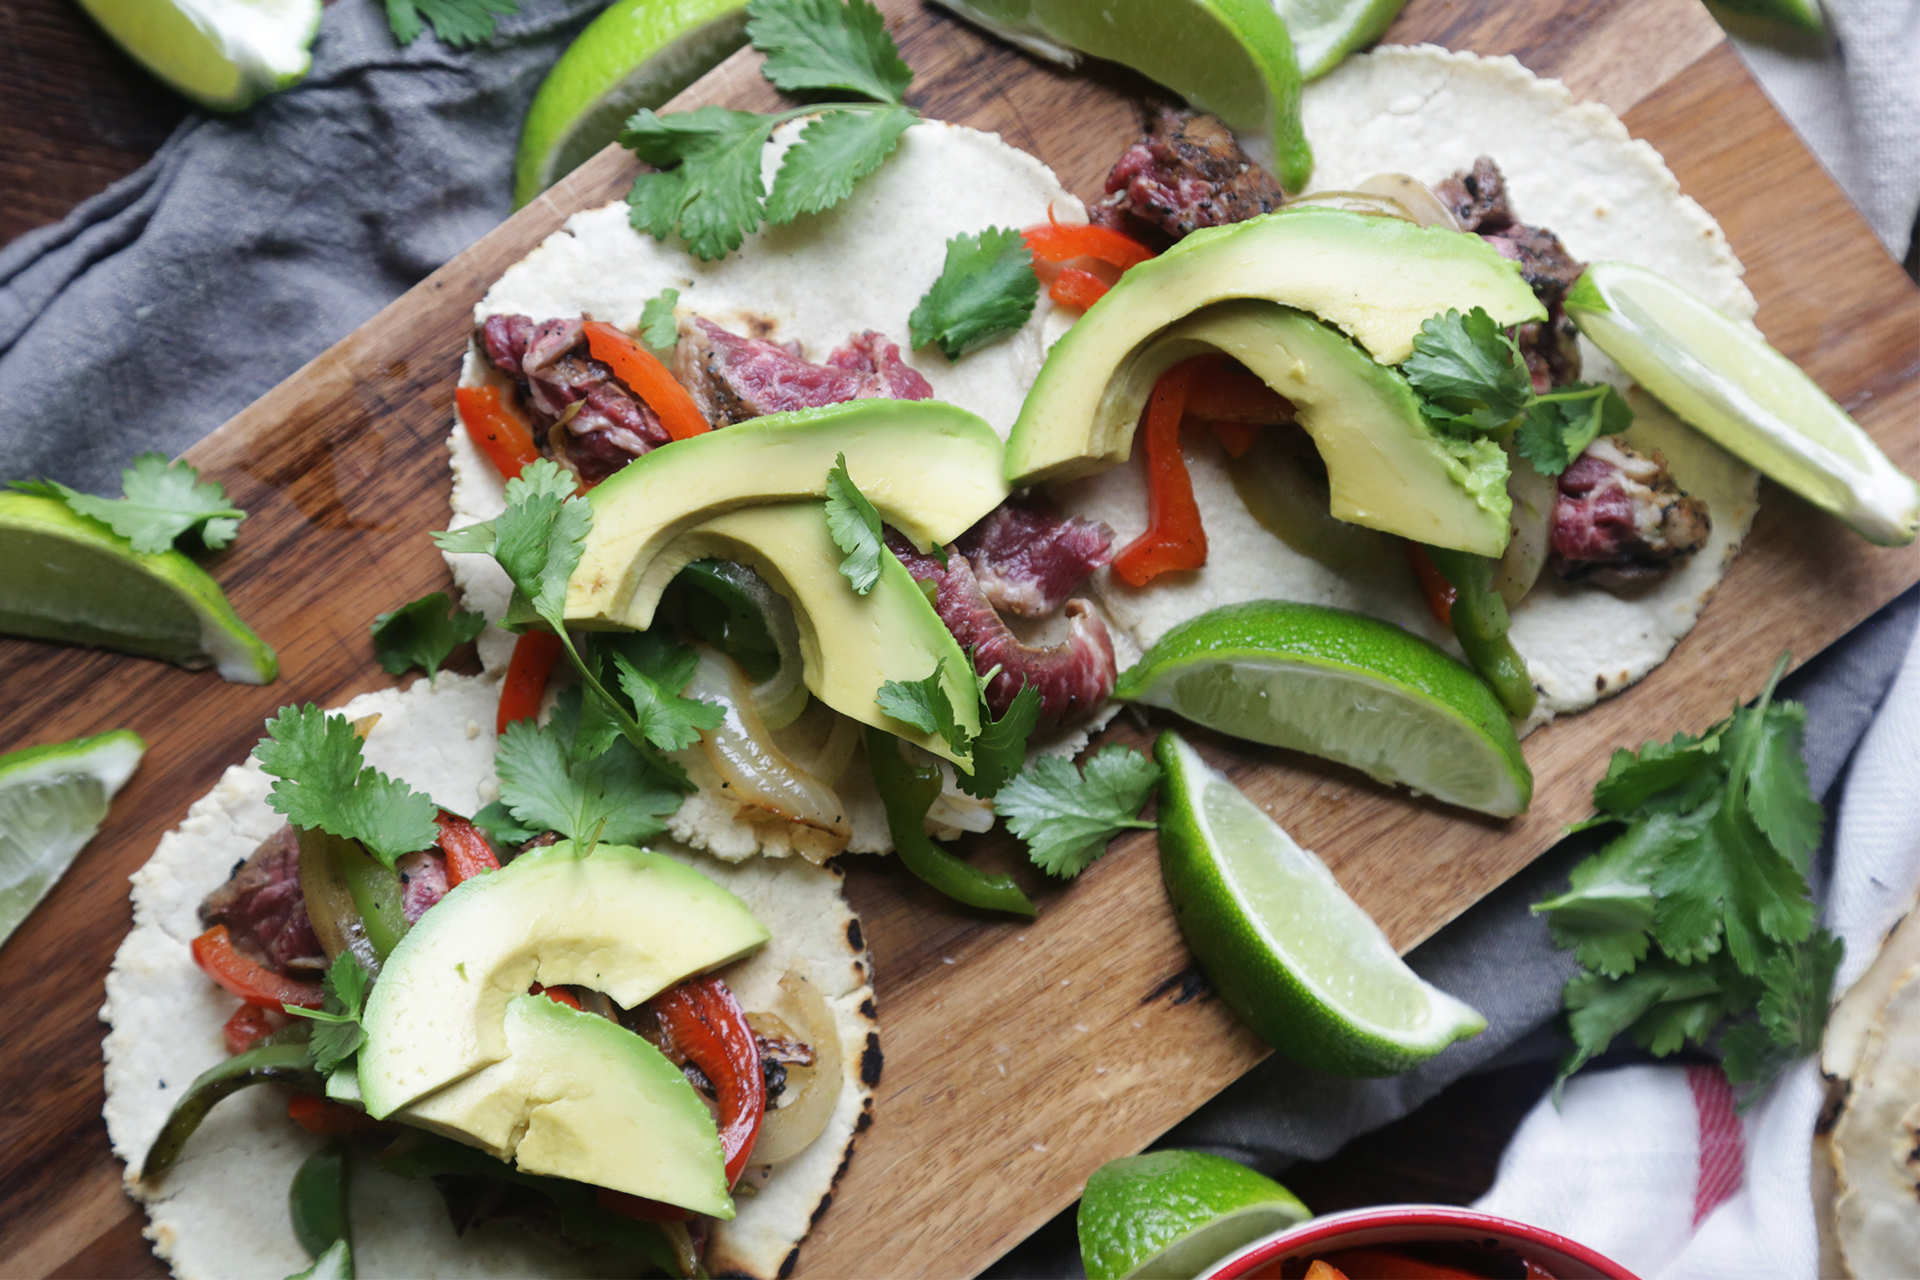 How to Make Mojo Skirt Steak Fajitas With Homemade Tortillas